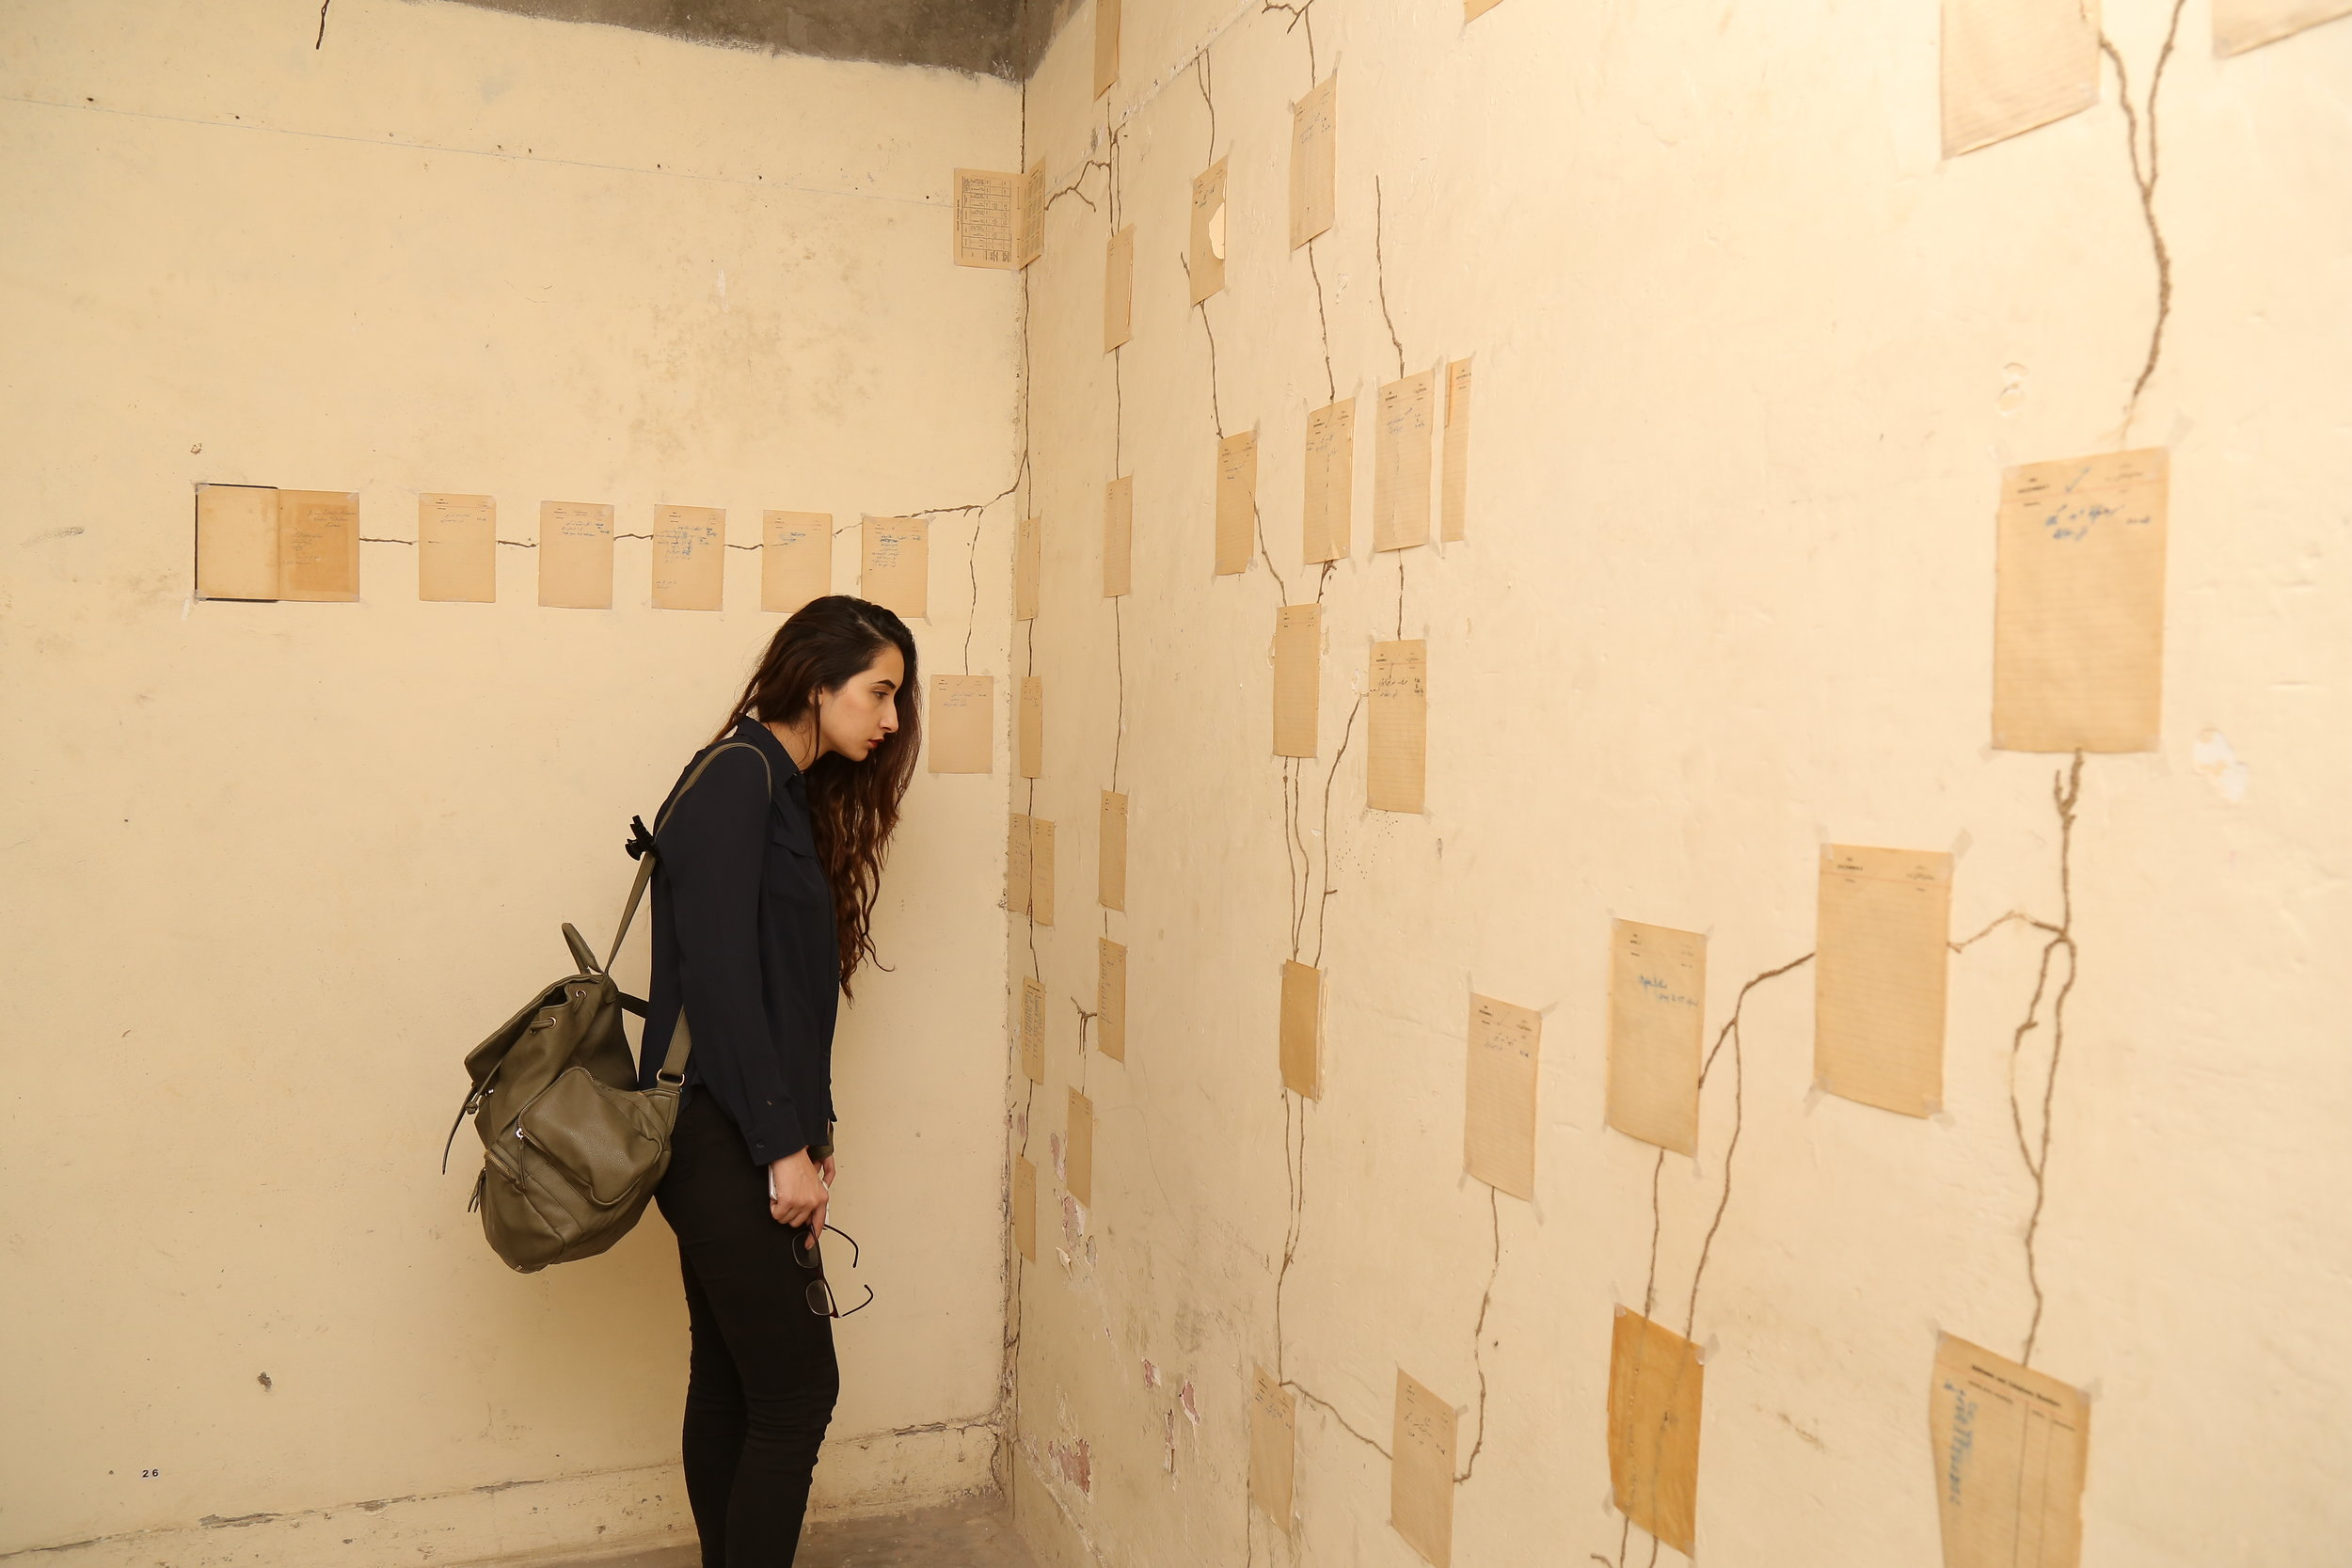 Nisha Hasan  'Elegy for the Leaves'   8 X 10 square feet room, pages from a found diary, termite mud tunnels, surgical tape  Dimensions variable  2017